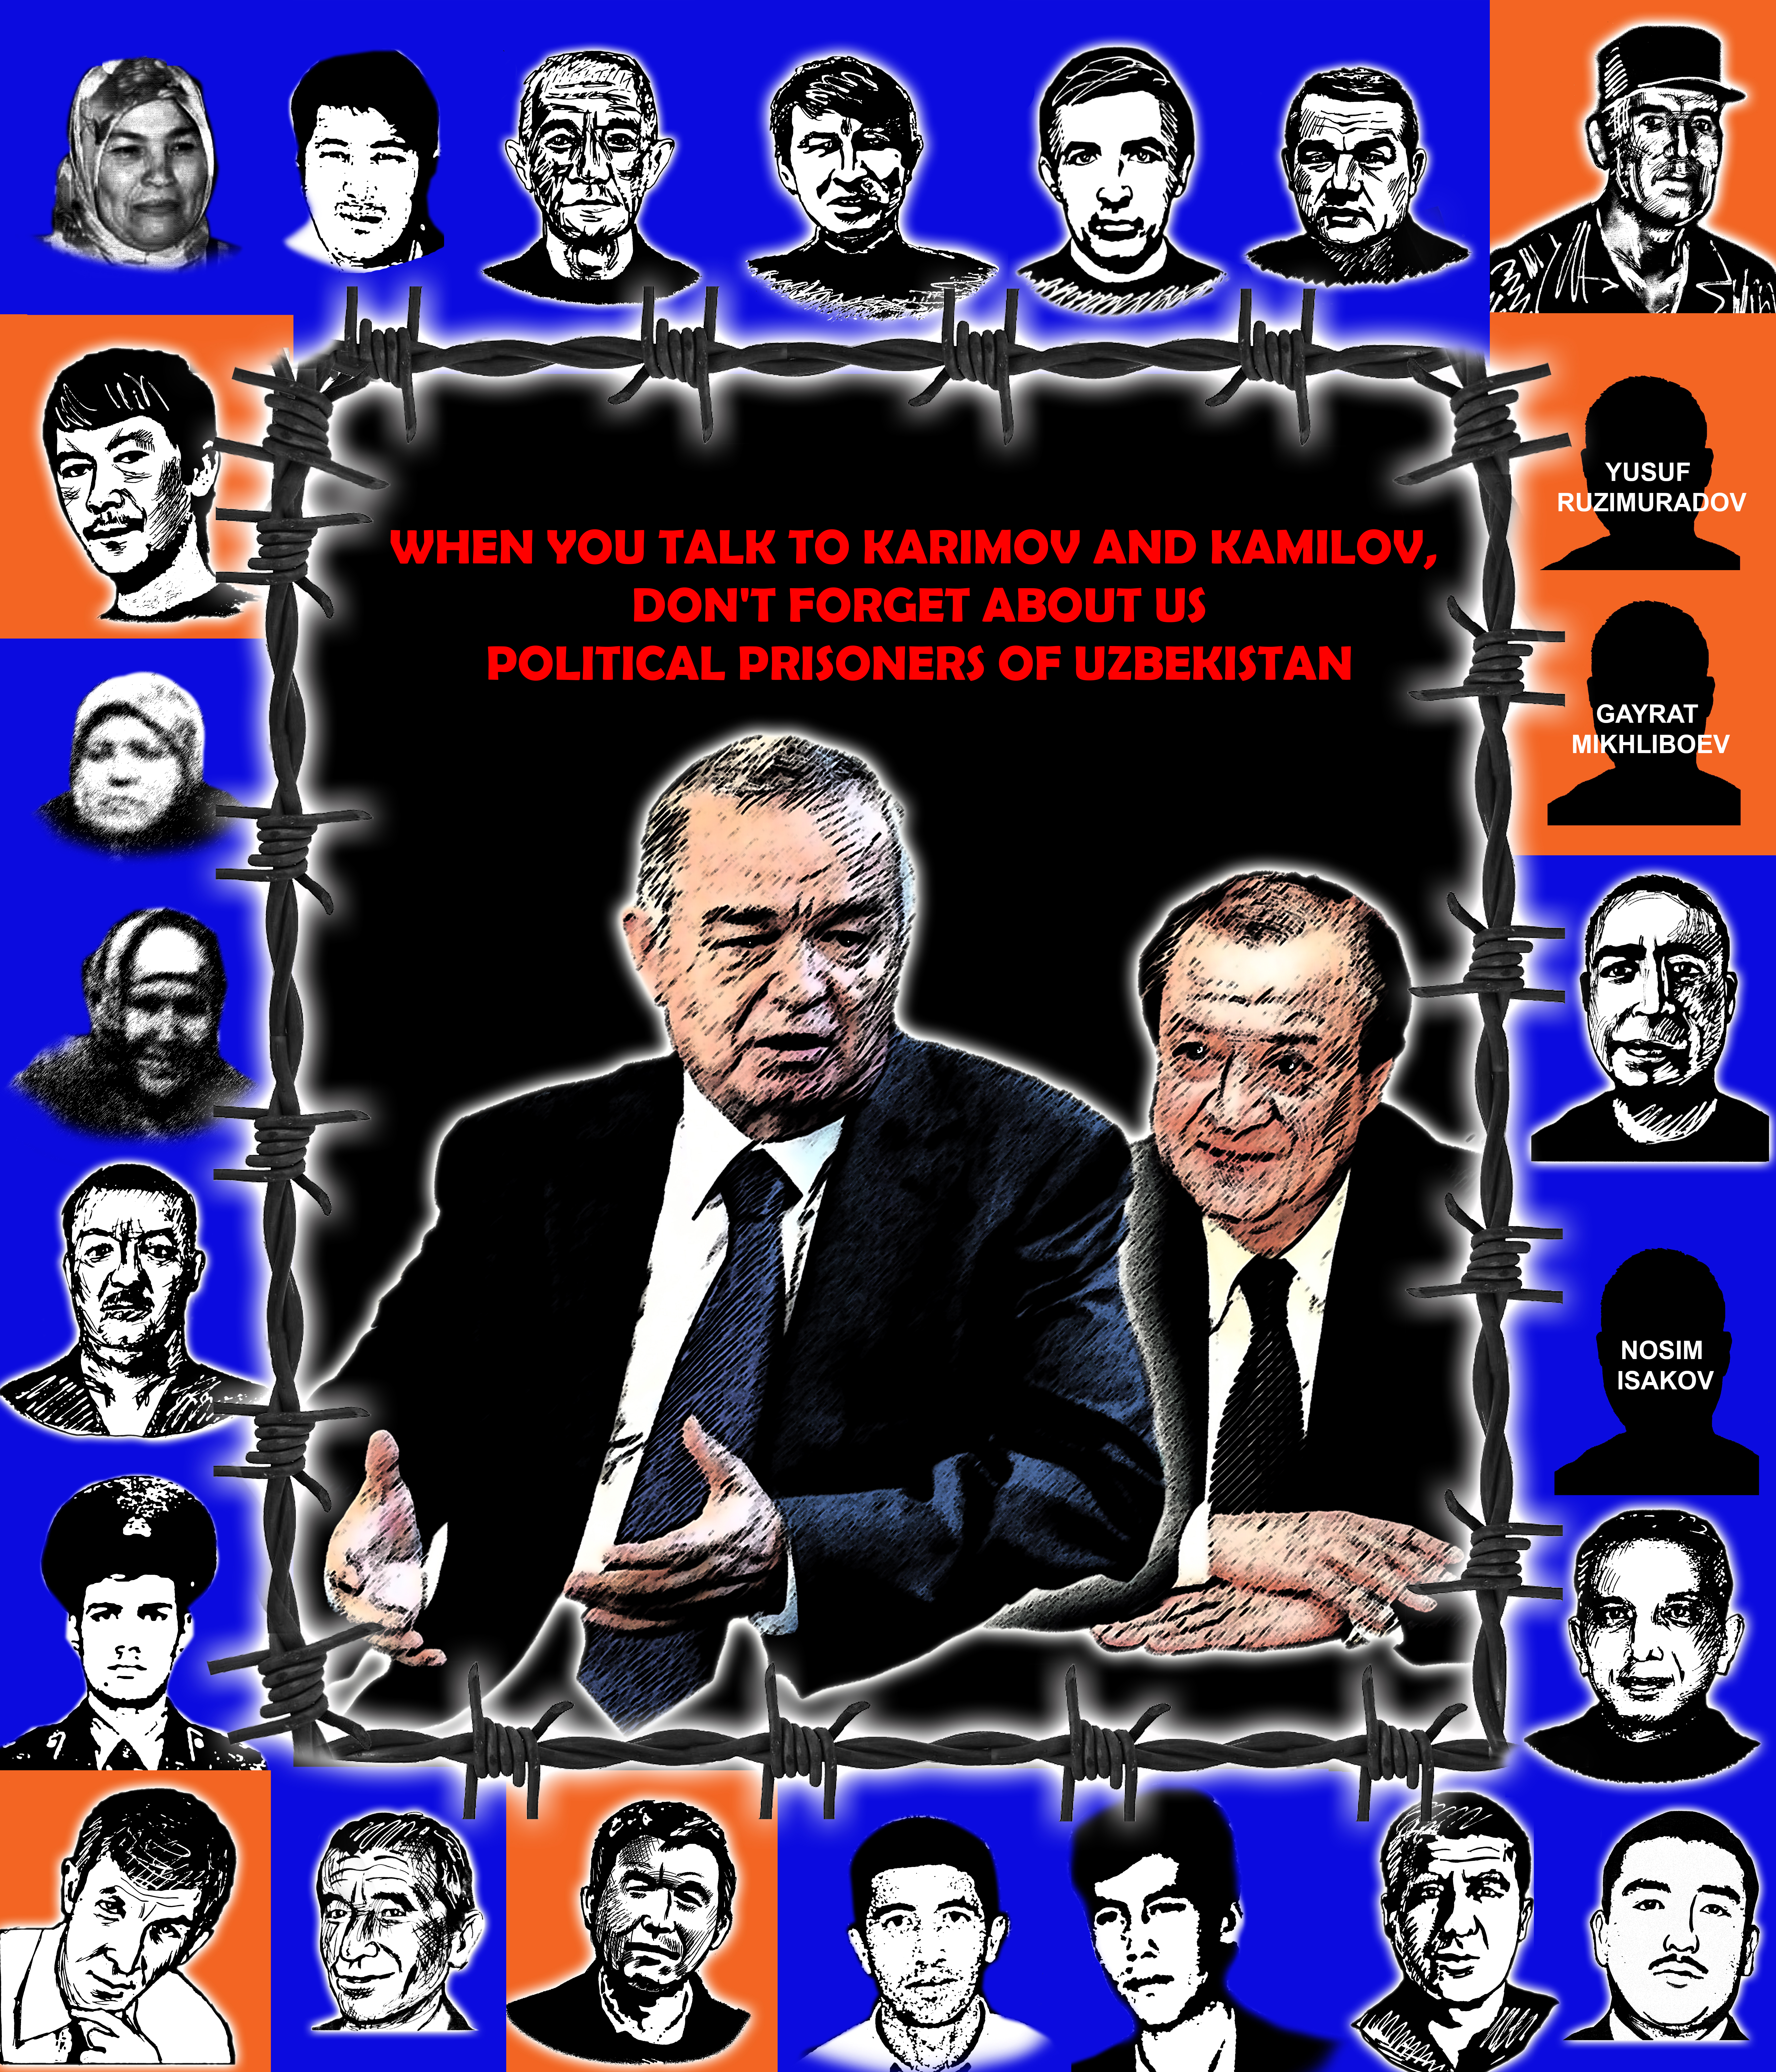 The international community must force the government of Uzbekistan to respect the human rights laws